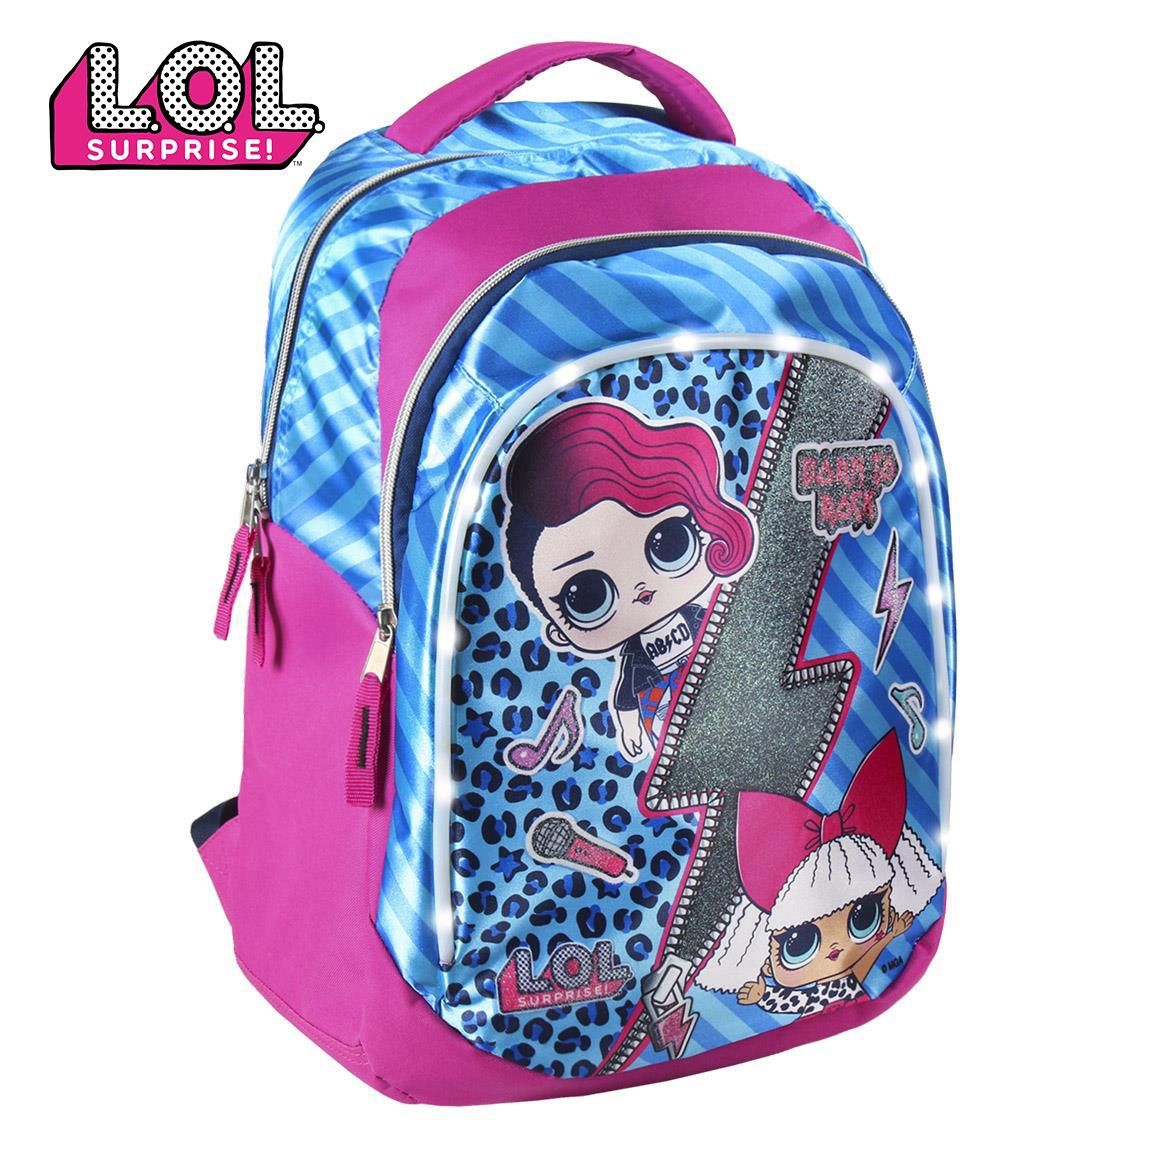 Backpack Casual Luces Lol